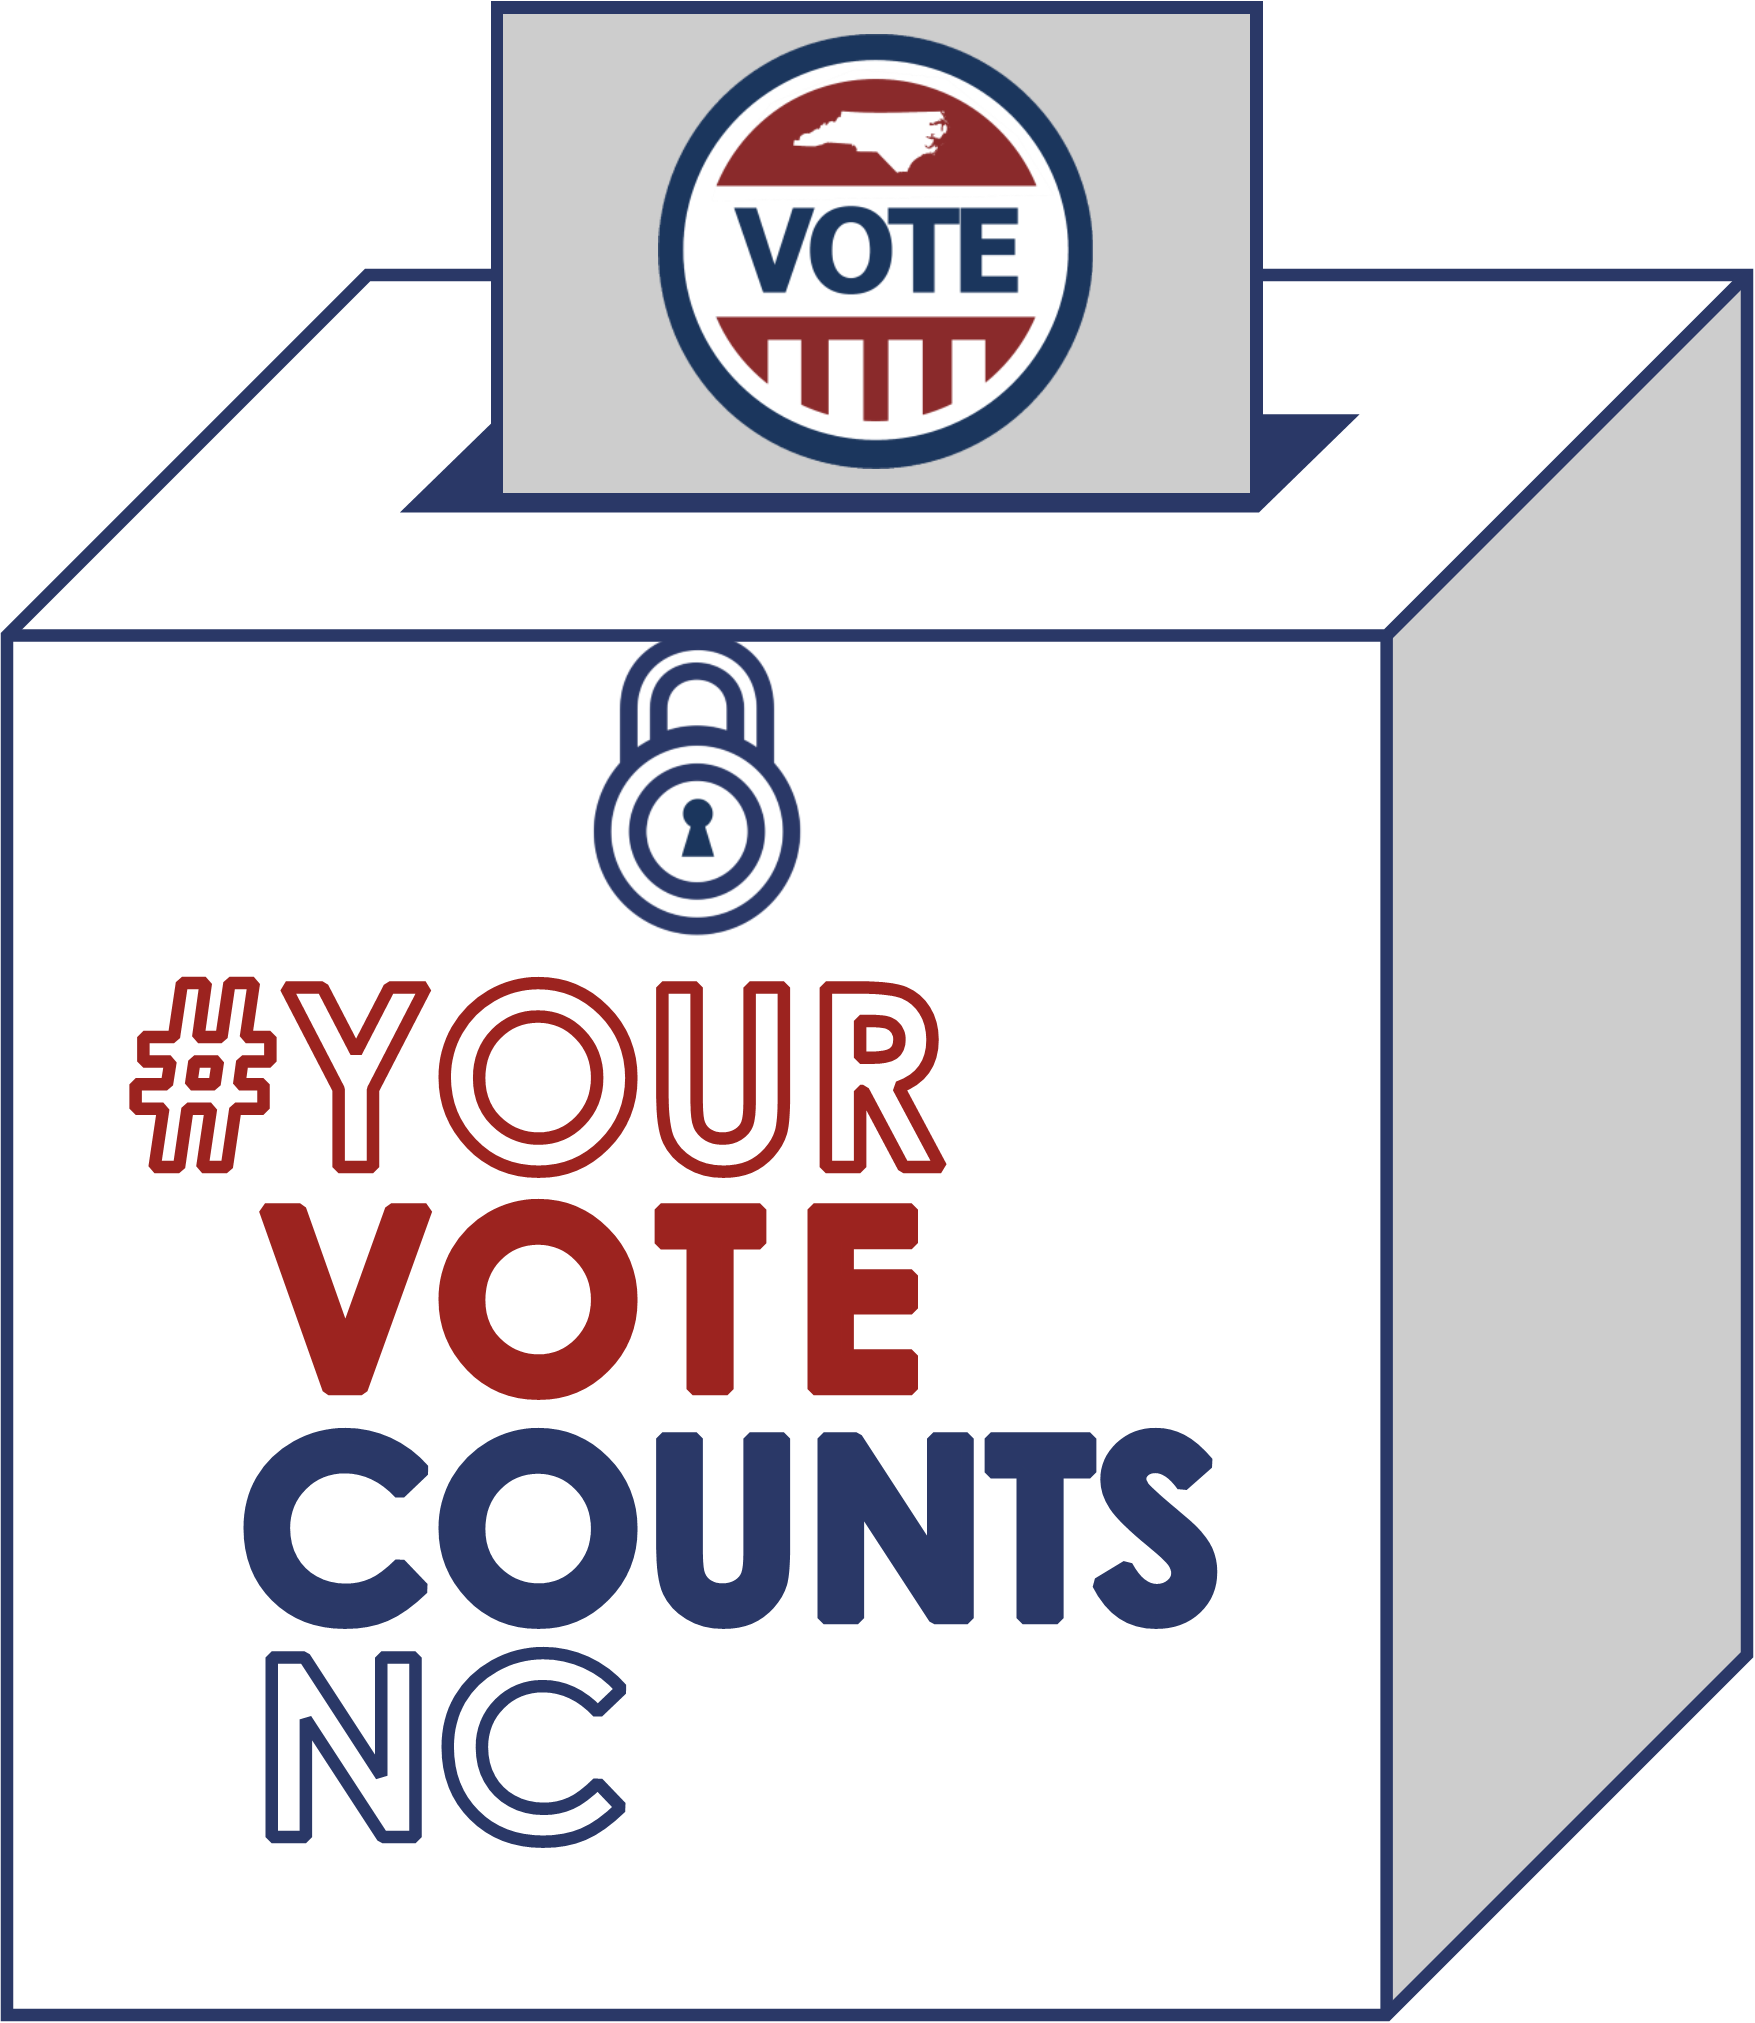 YourVoteCountsNC